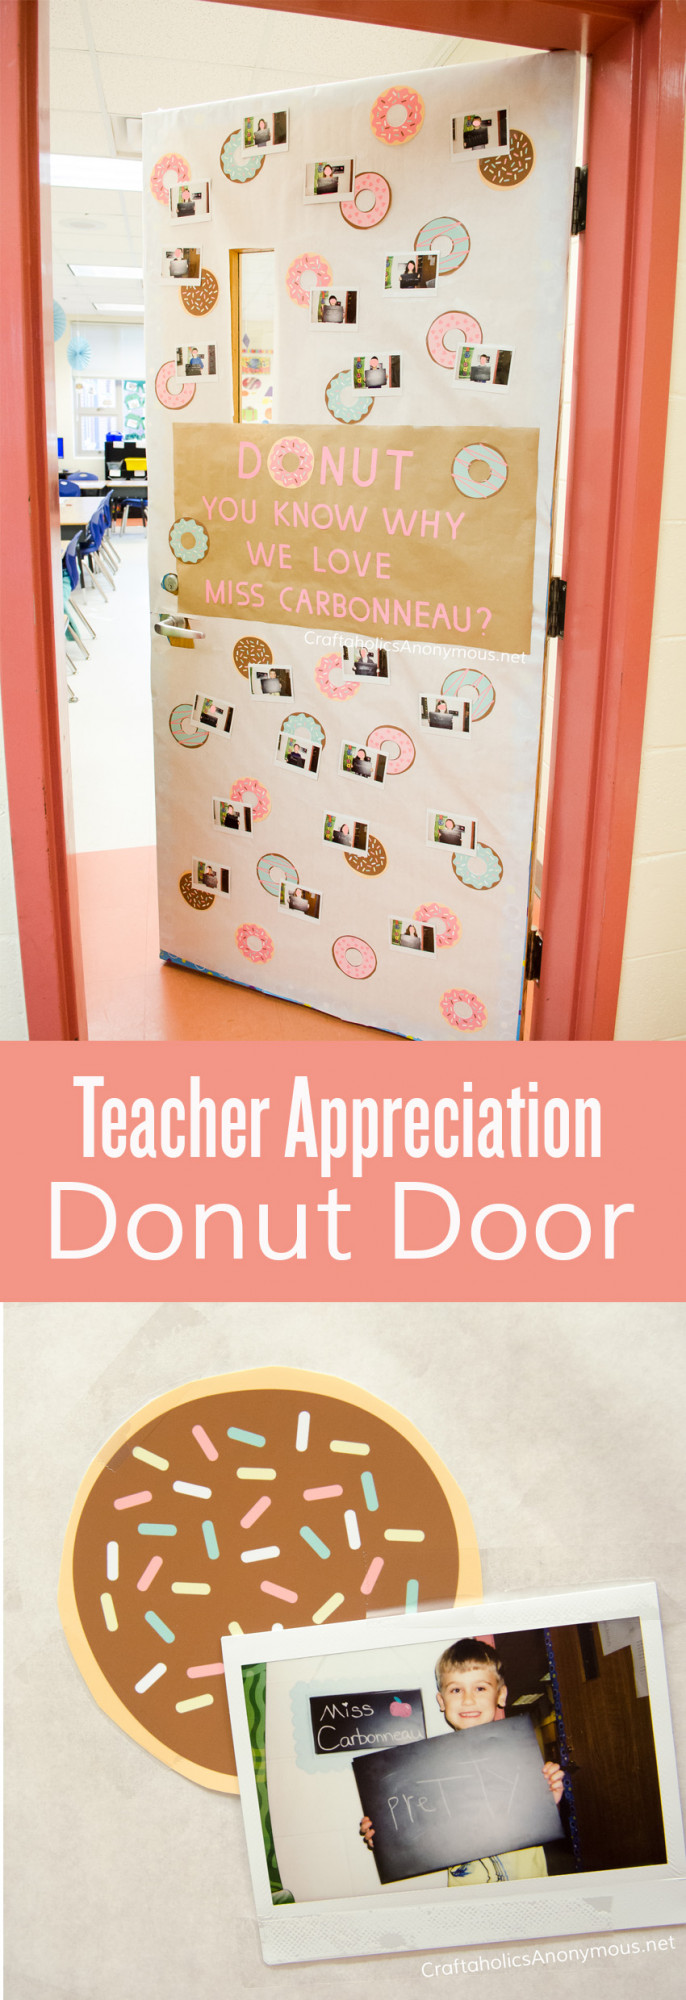 teacher appreciation door collage